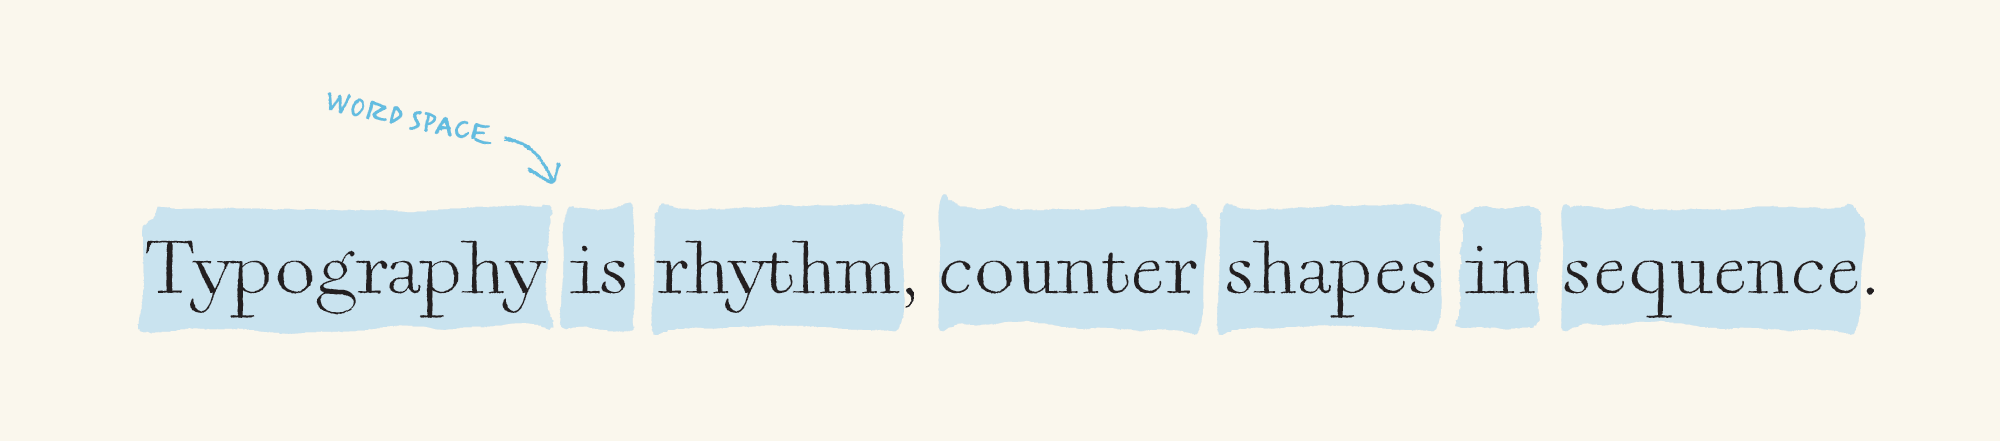 The inverse hierarchy of typography (draft) - Letter spacing determines the proper amount of word spacing.